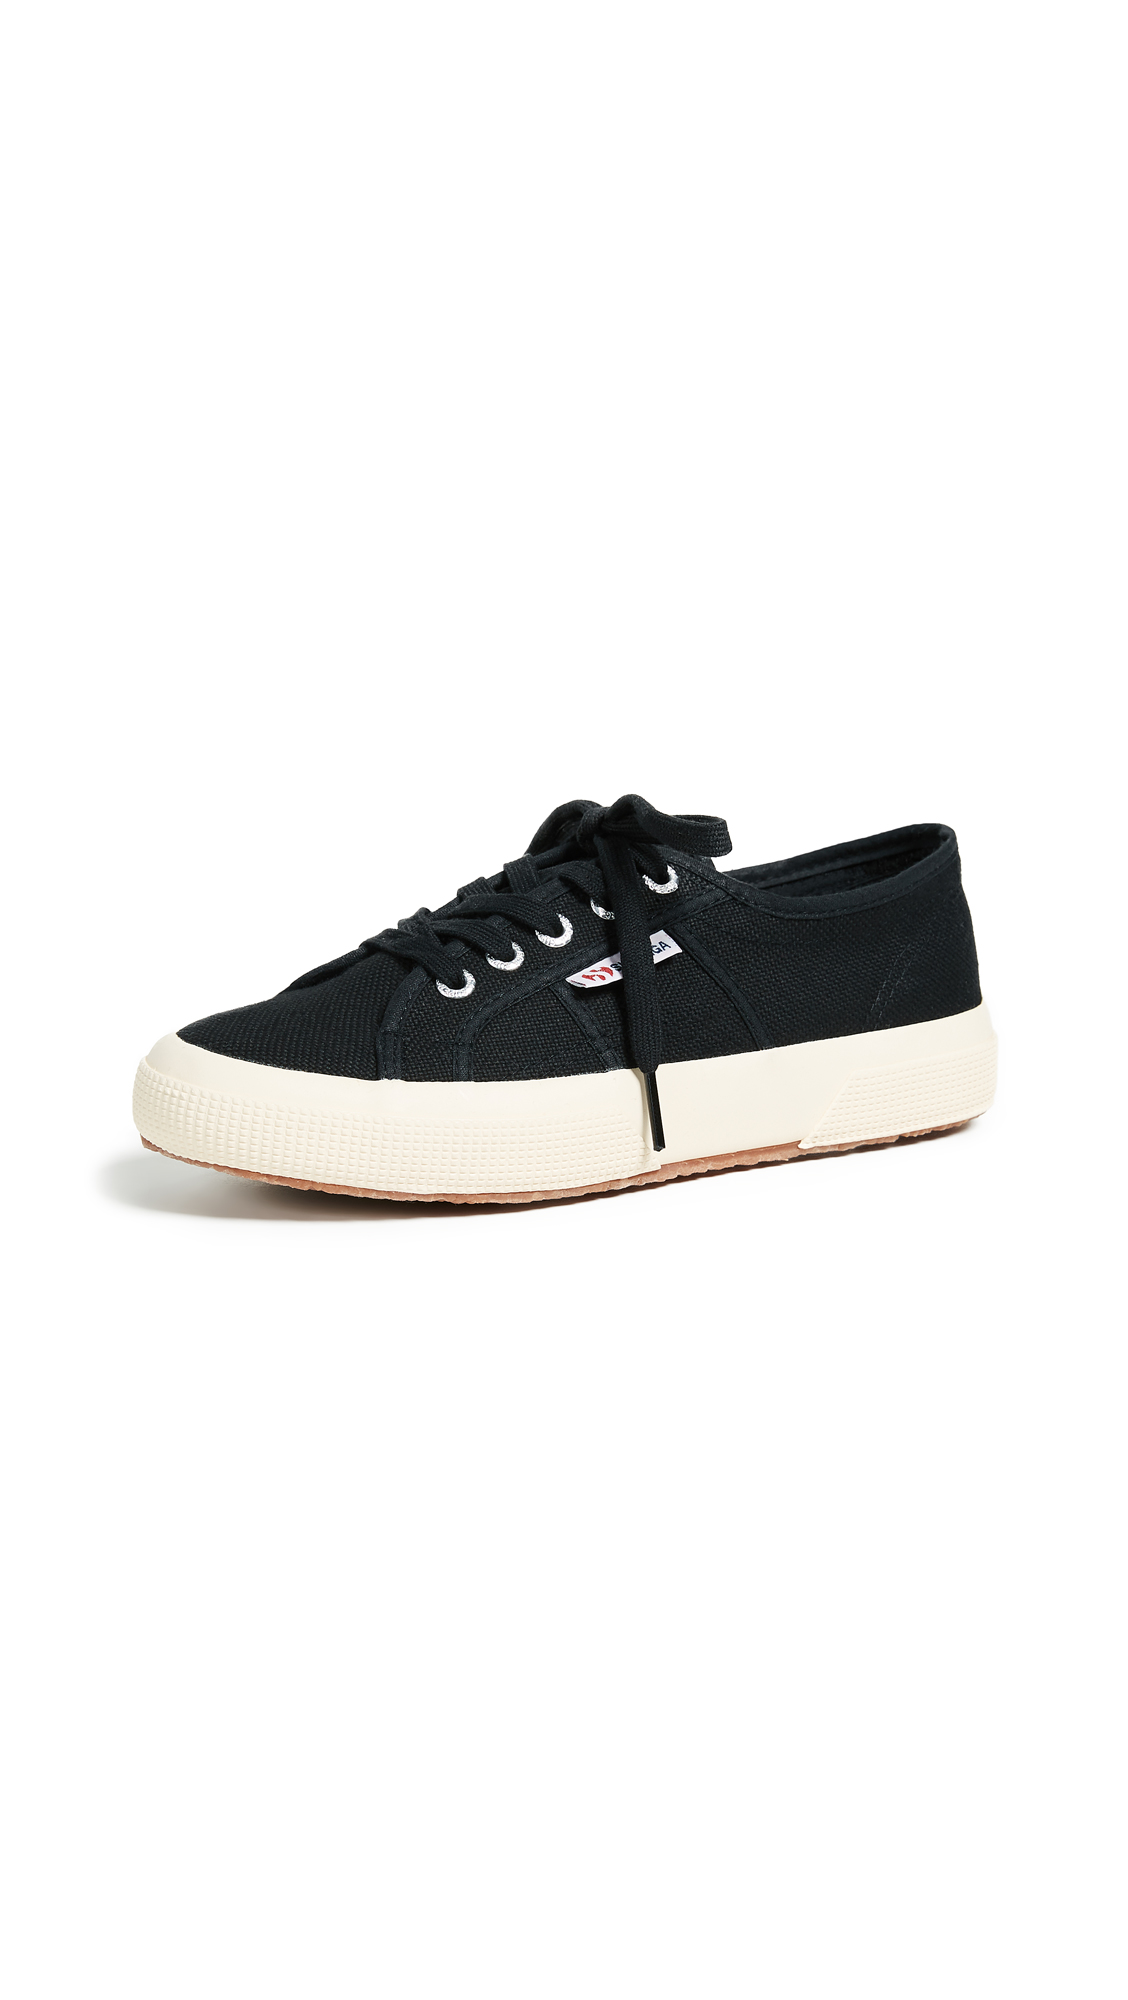 Superga 2750 Cotu Classic Sneakers - Black